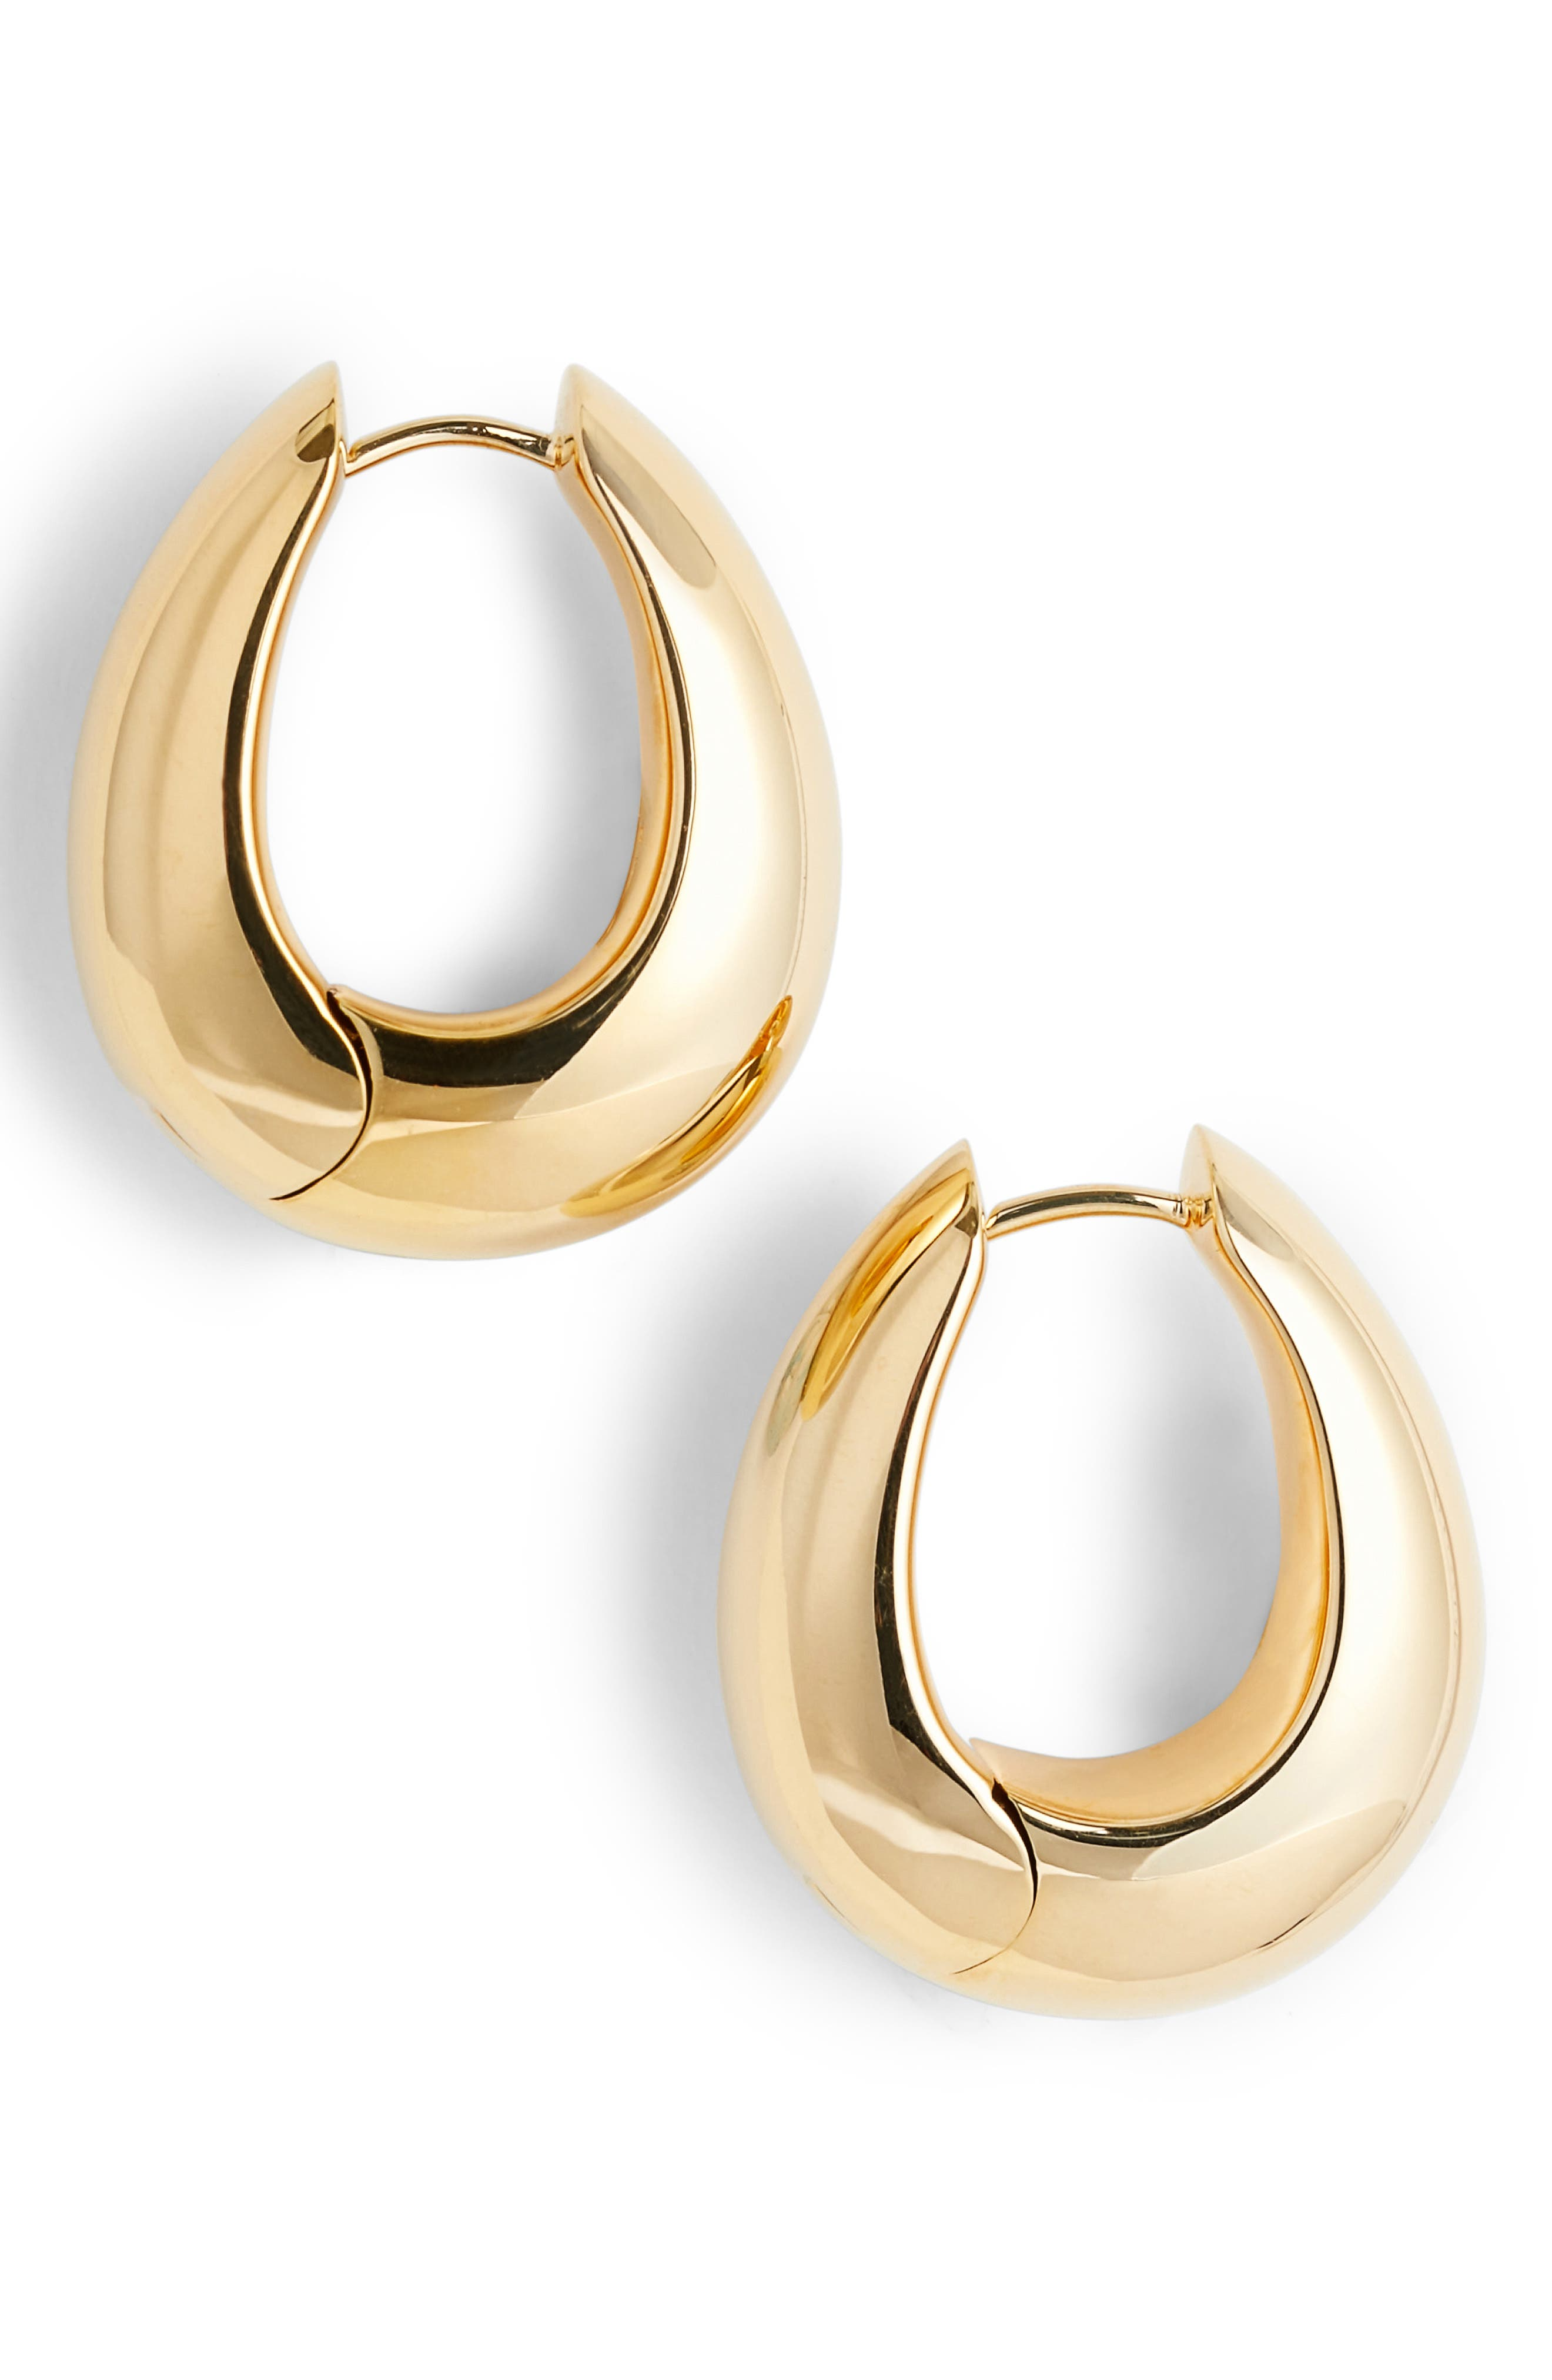 Large Ice Vermeil Hoop Earrings,                             Main thumbnail 1, color,                             925 SILVER/9K GOLD